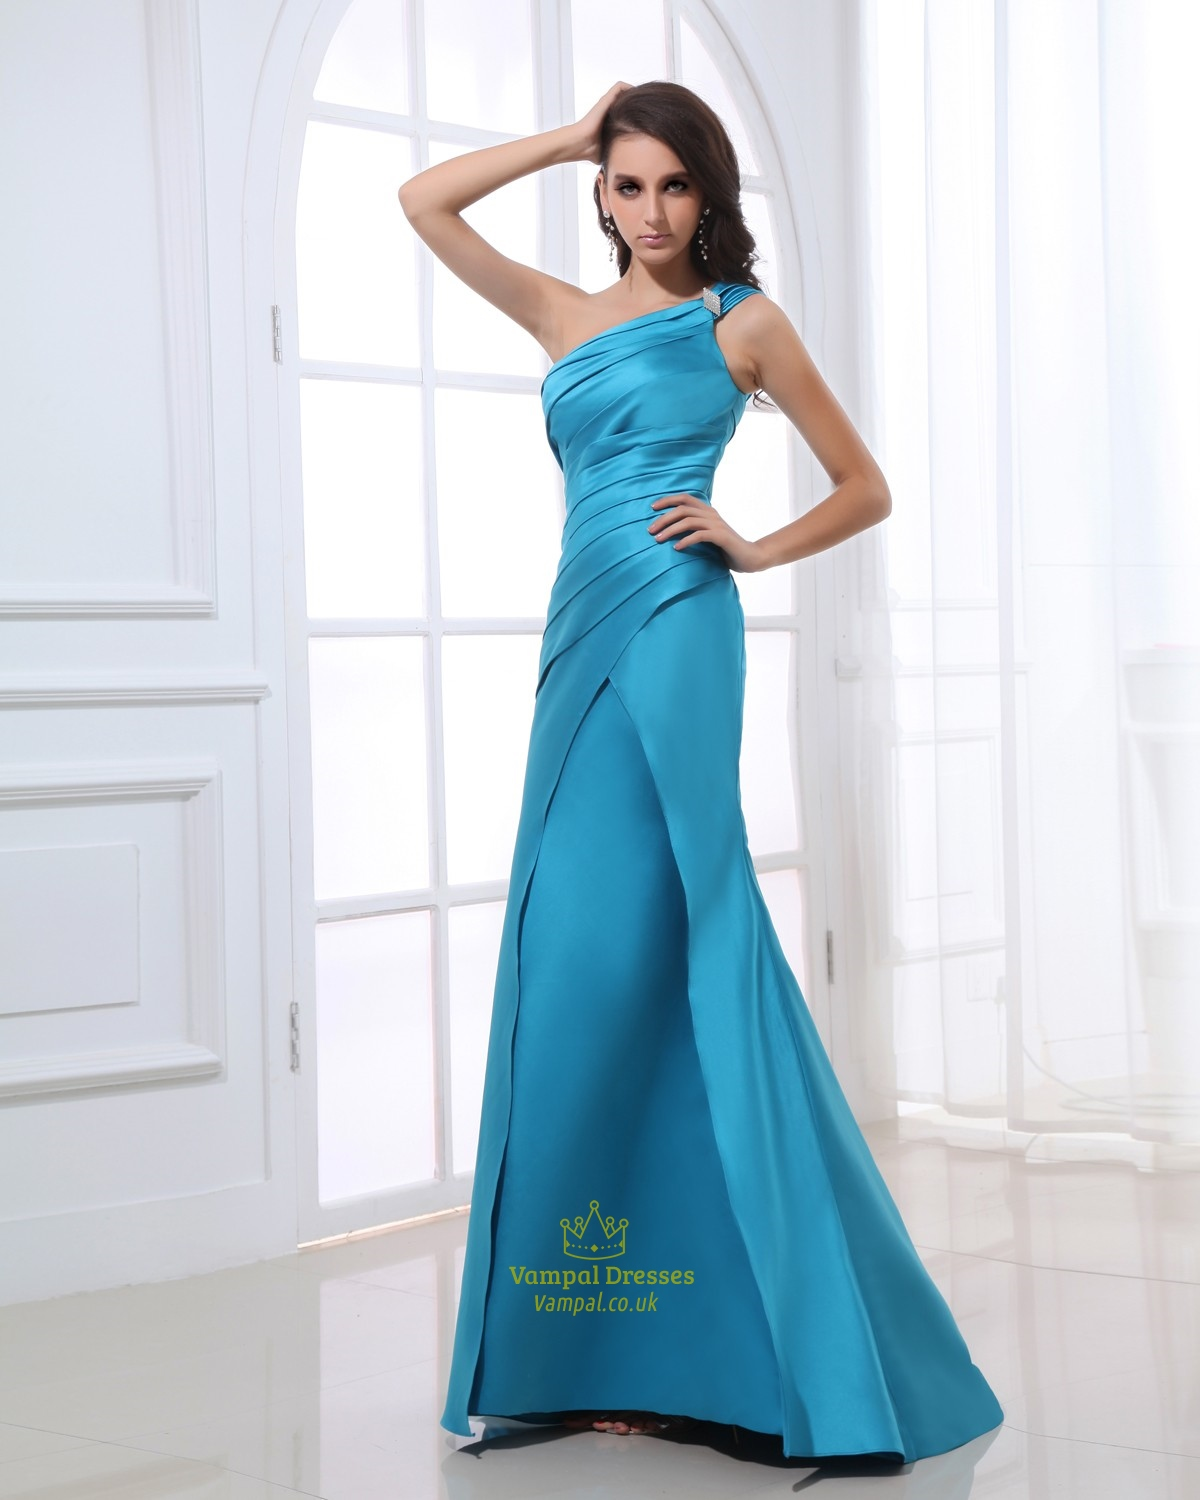 Aqua Blue Dress What Color Shoes